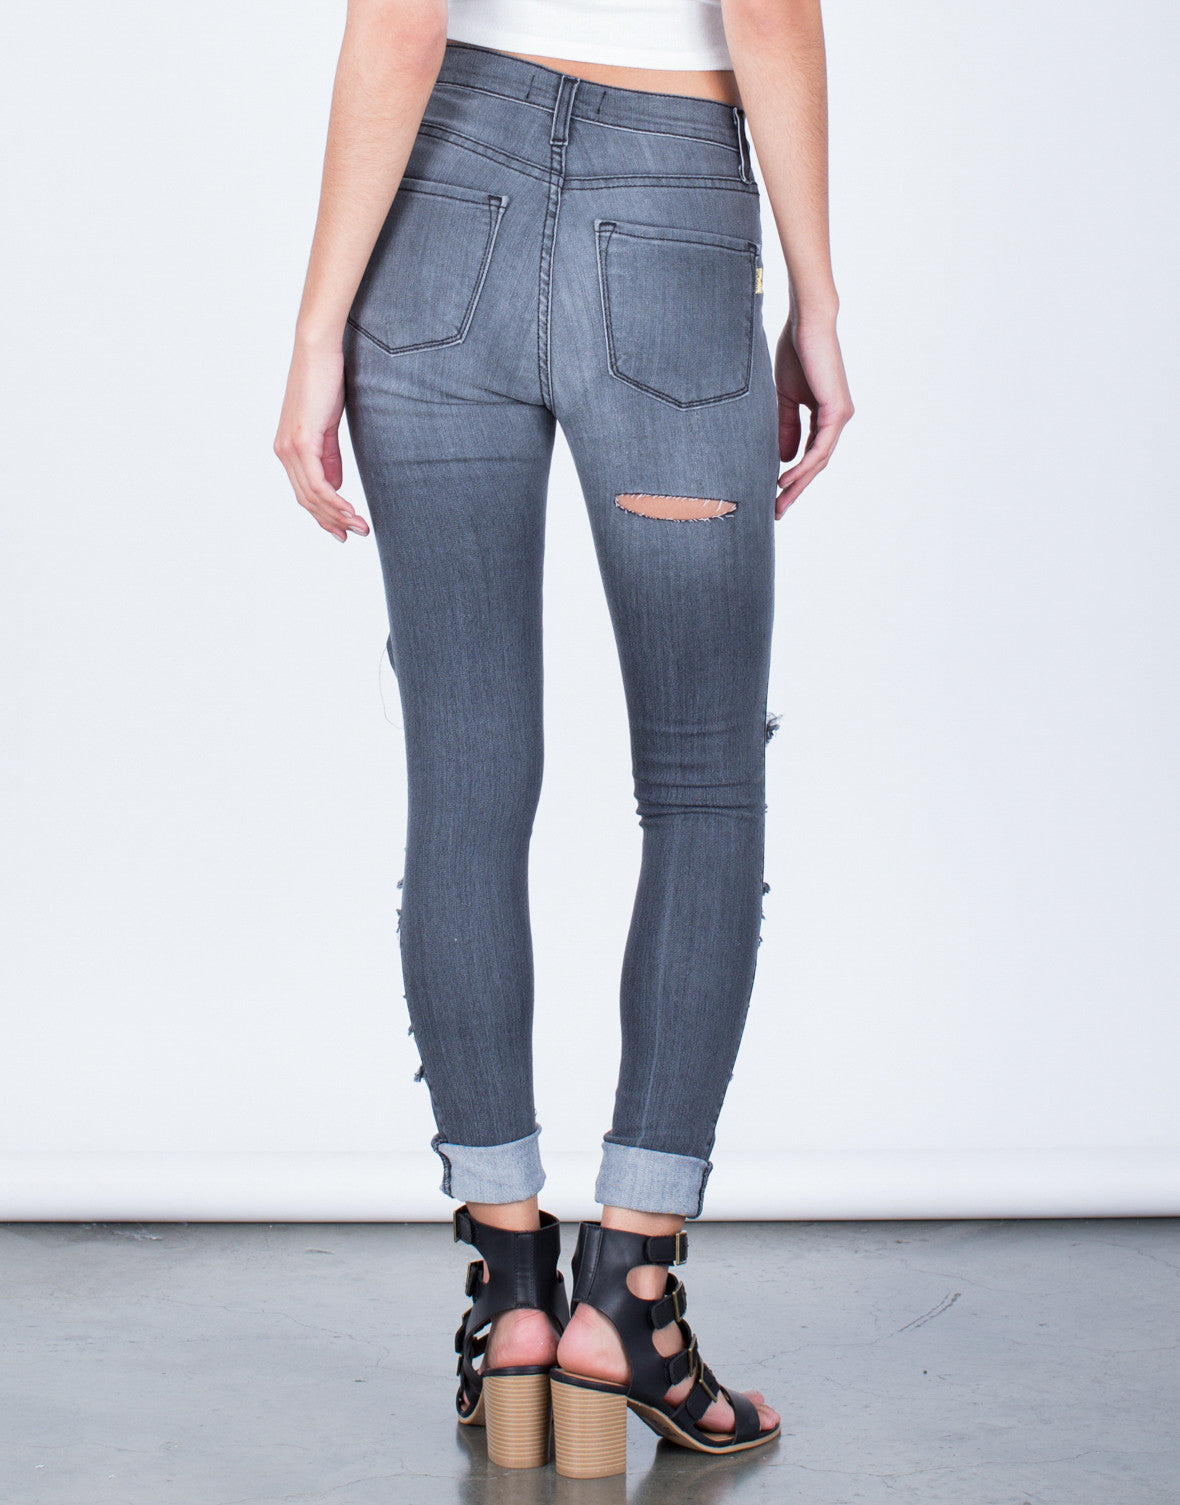 Back View of Front Shredded High Waisted Jeans